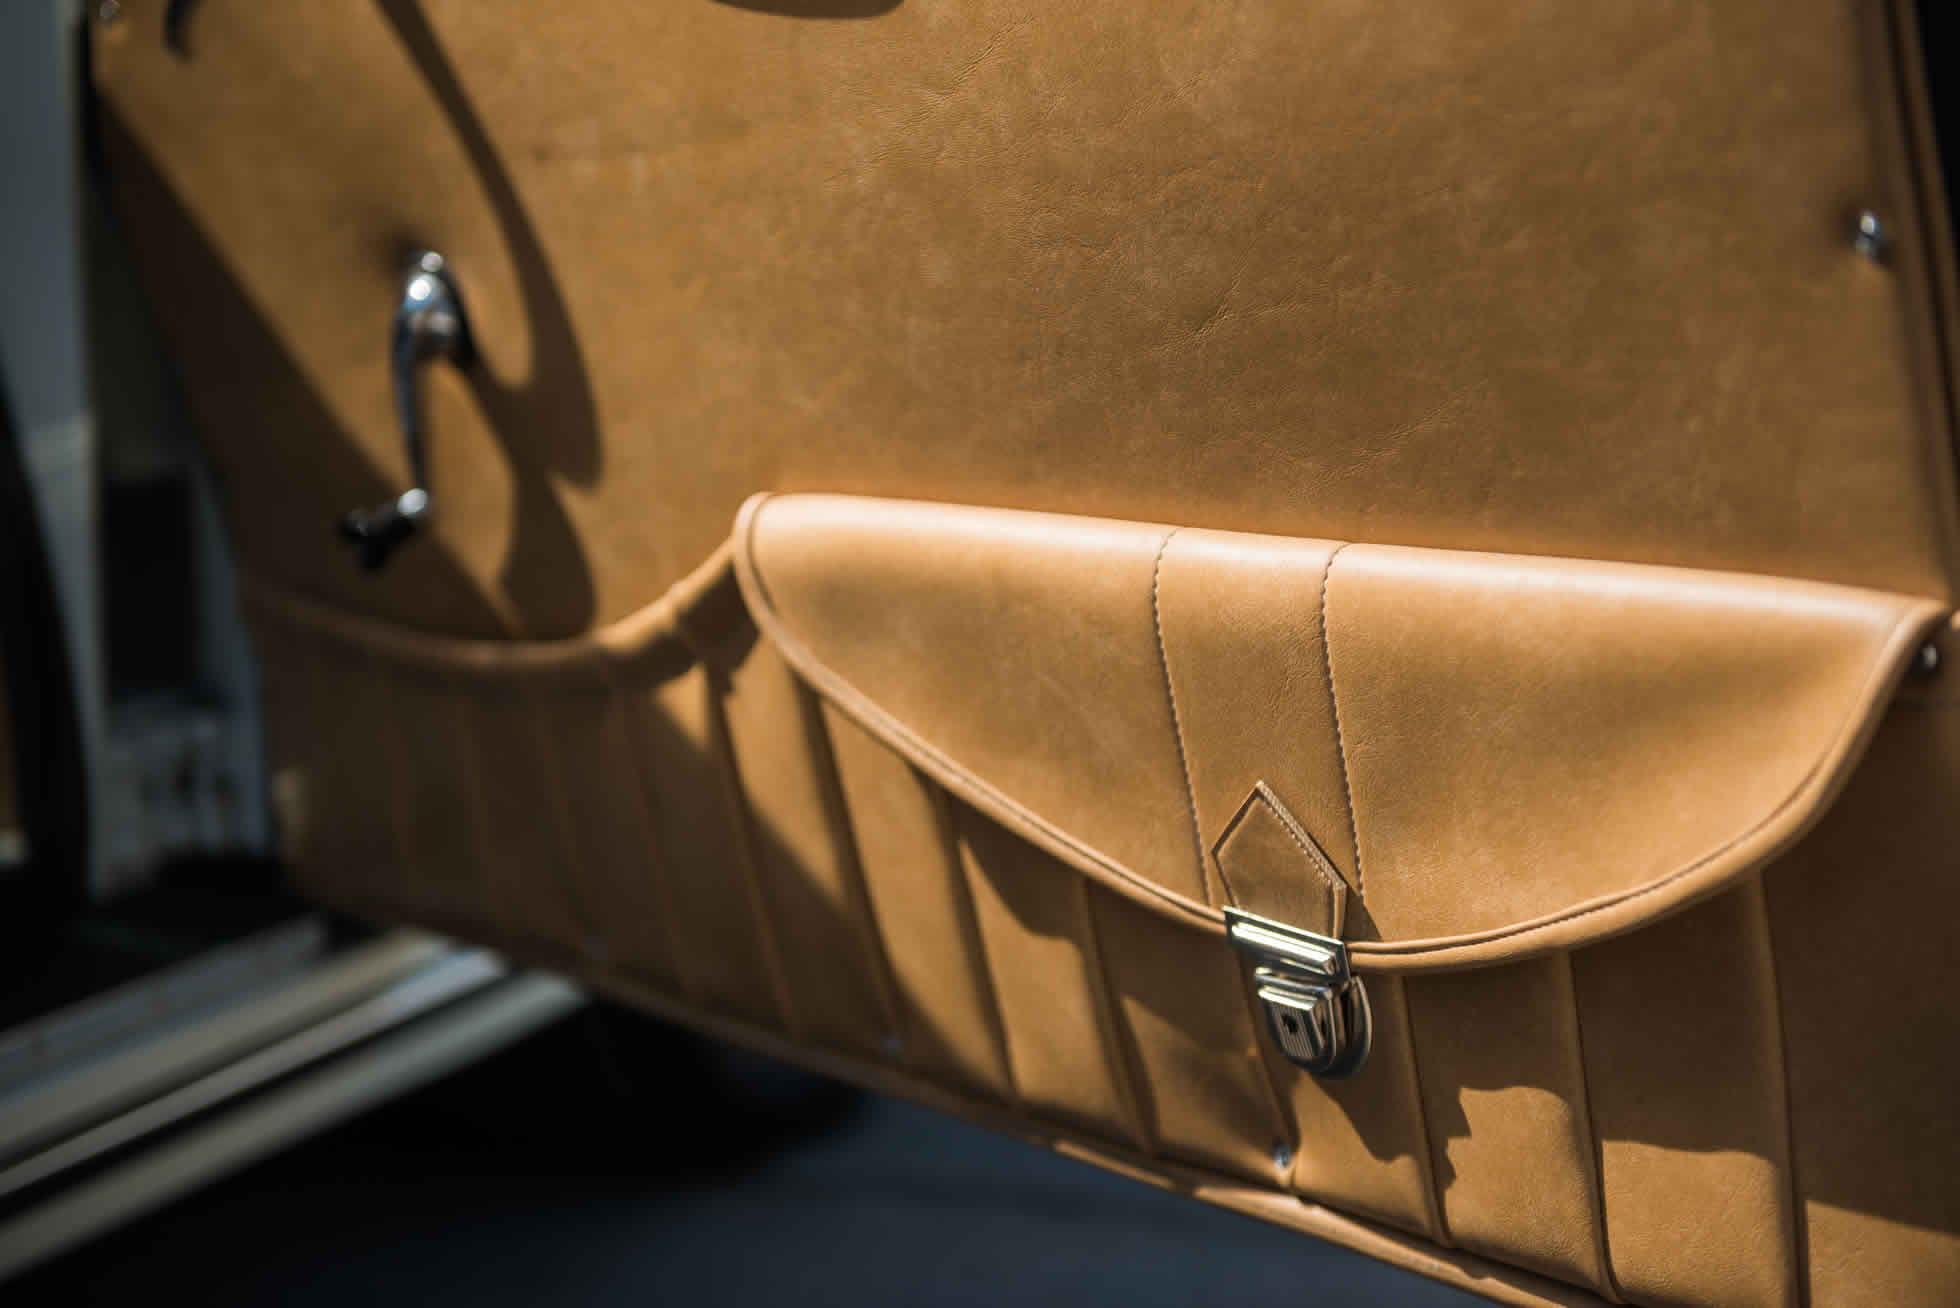 For Sale 1961 Porsche 356B S90 Roadster internal door details